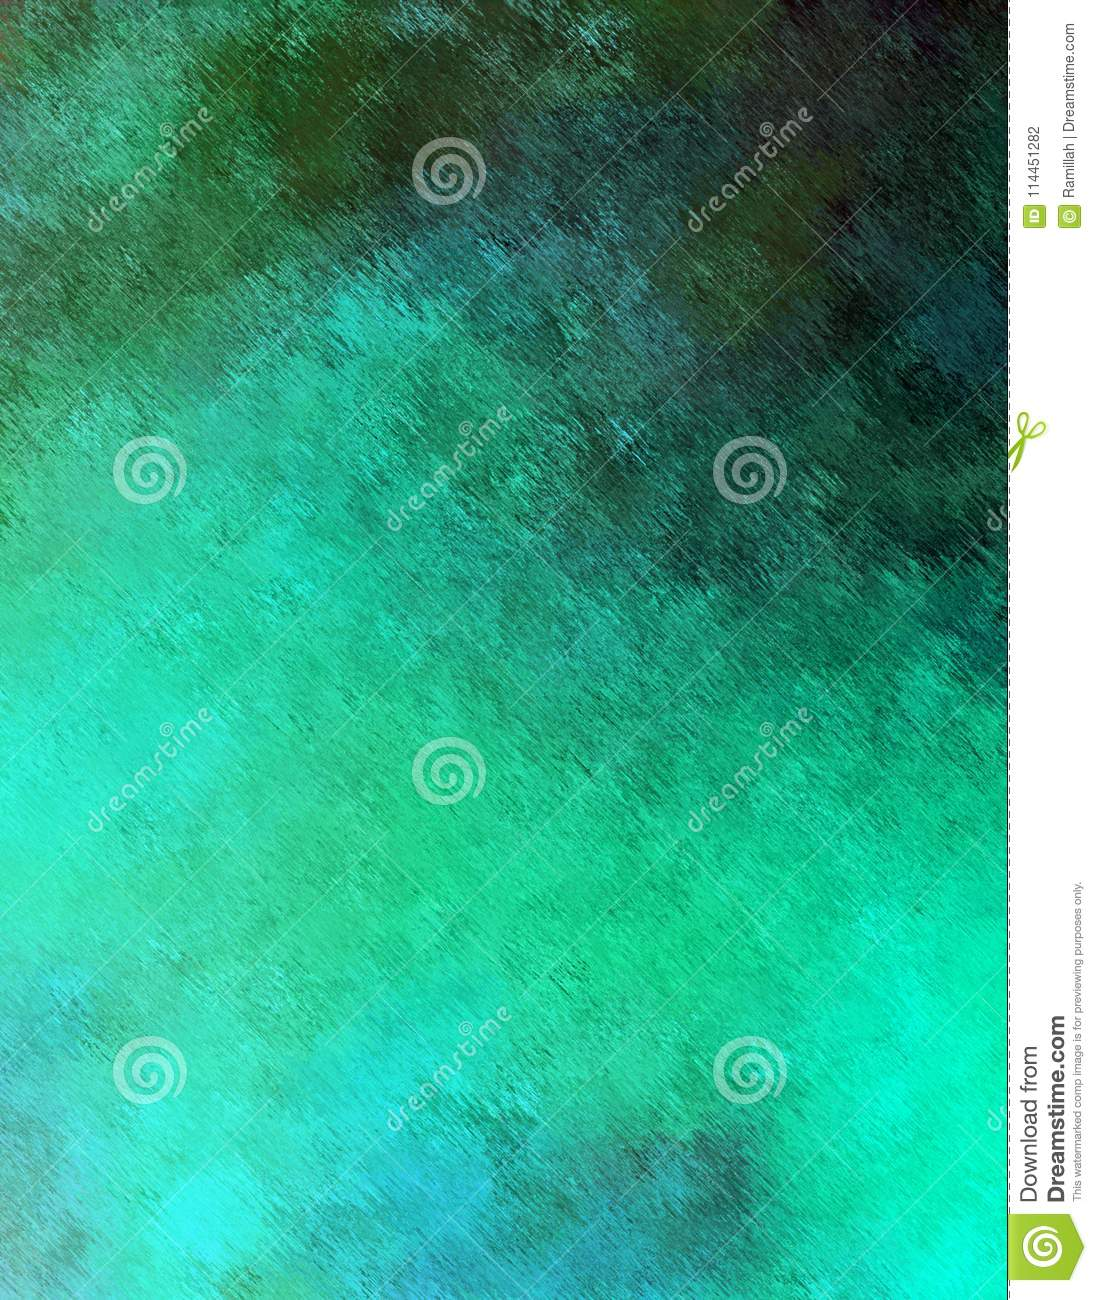 Digital Painting Abstract Colorful Background In Different Shades Of Green Colors Stock Illustration Illustration Of Freestyle Create 114451282